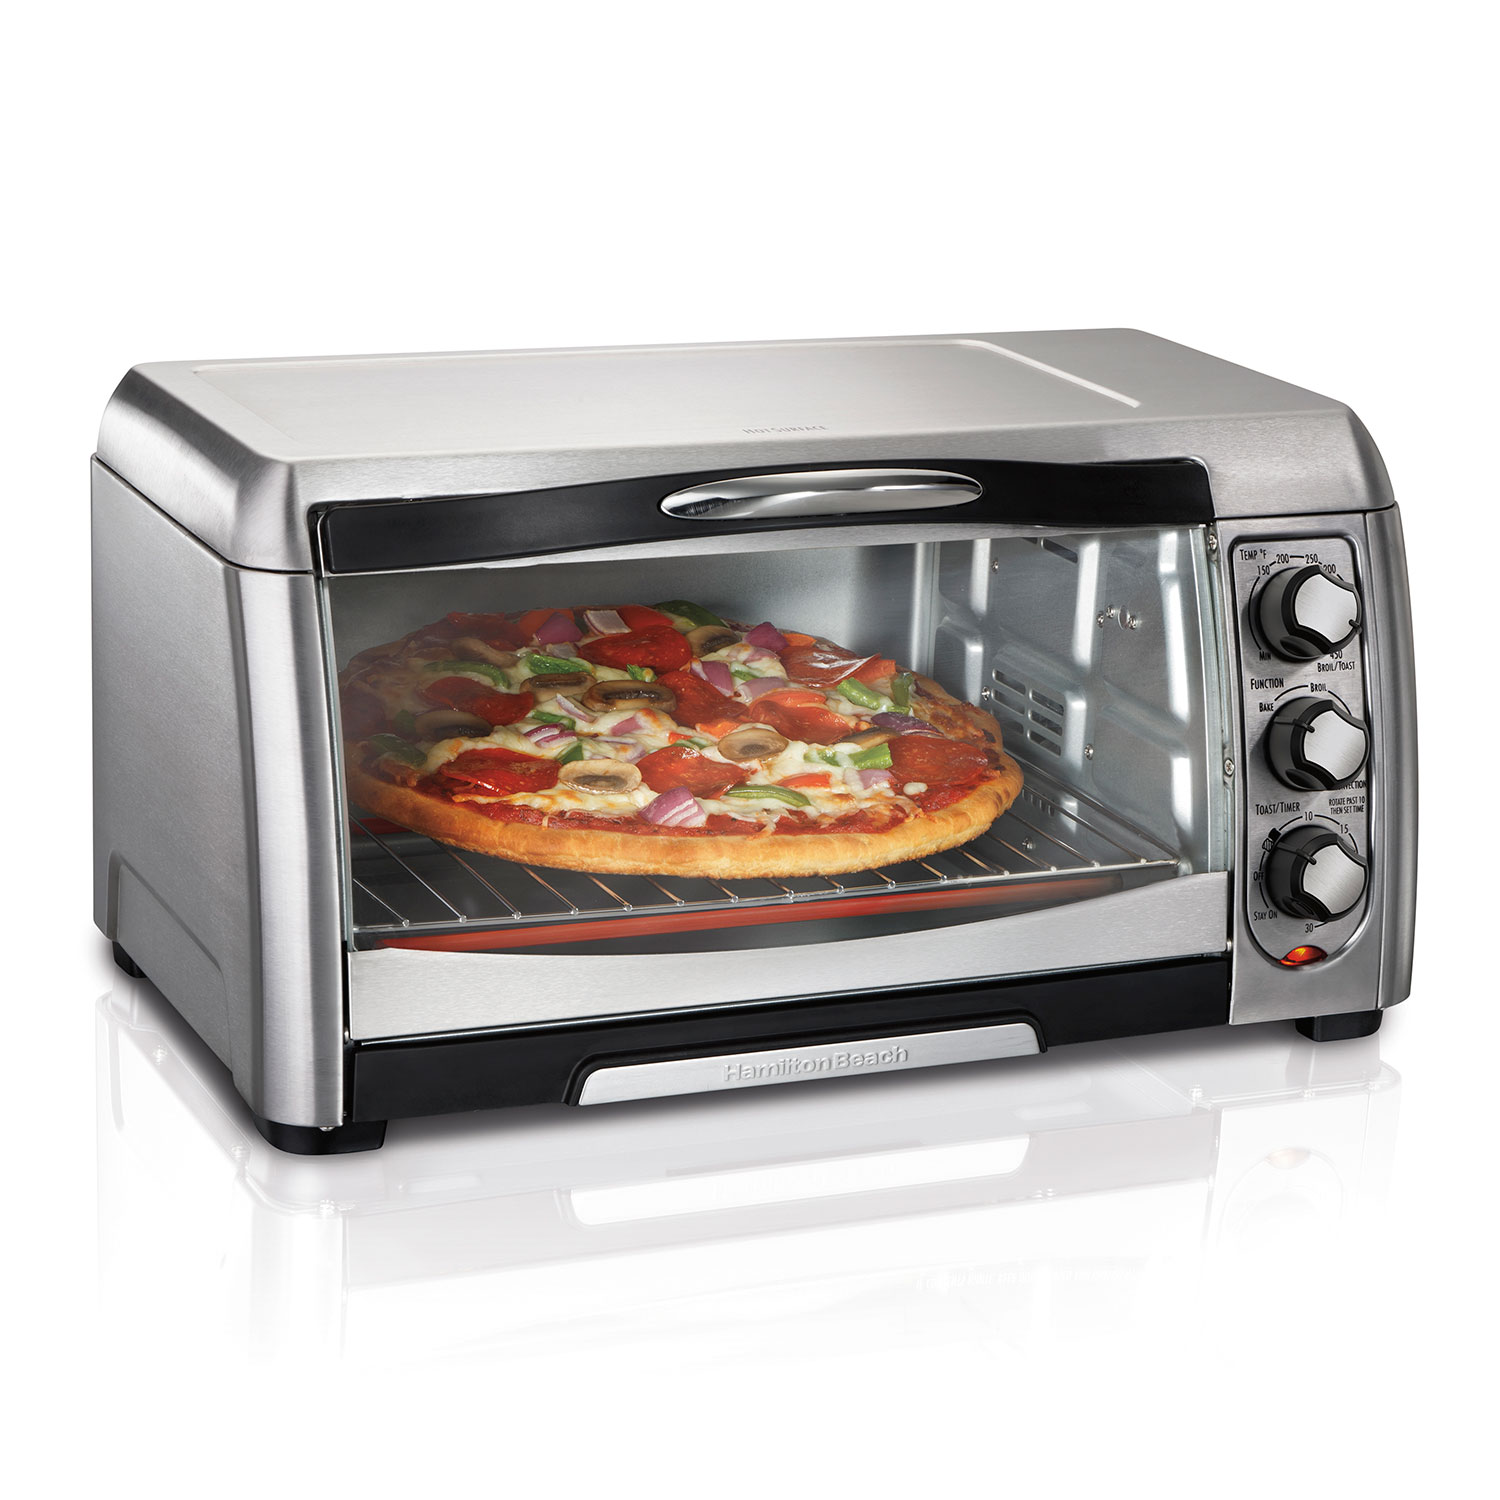 Toaster Oven with Convection (31333D)